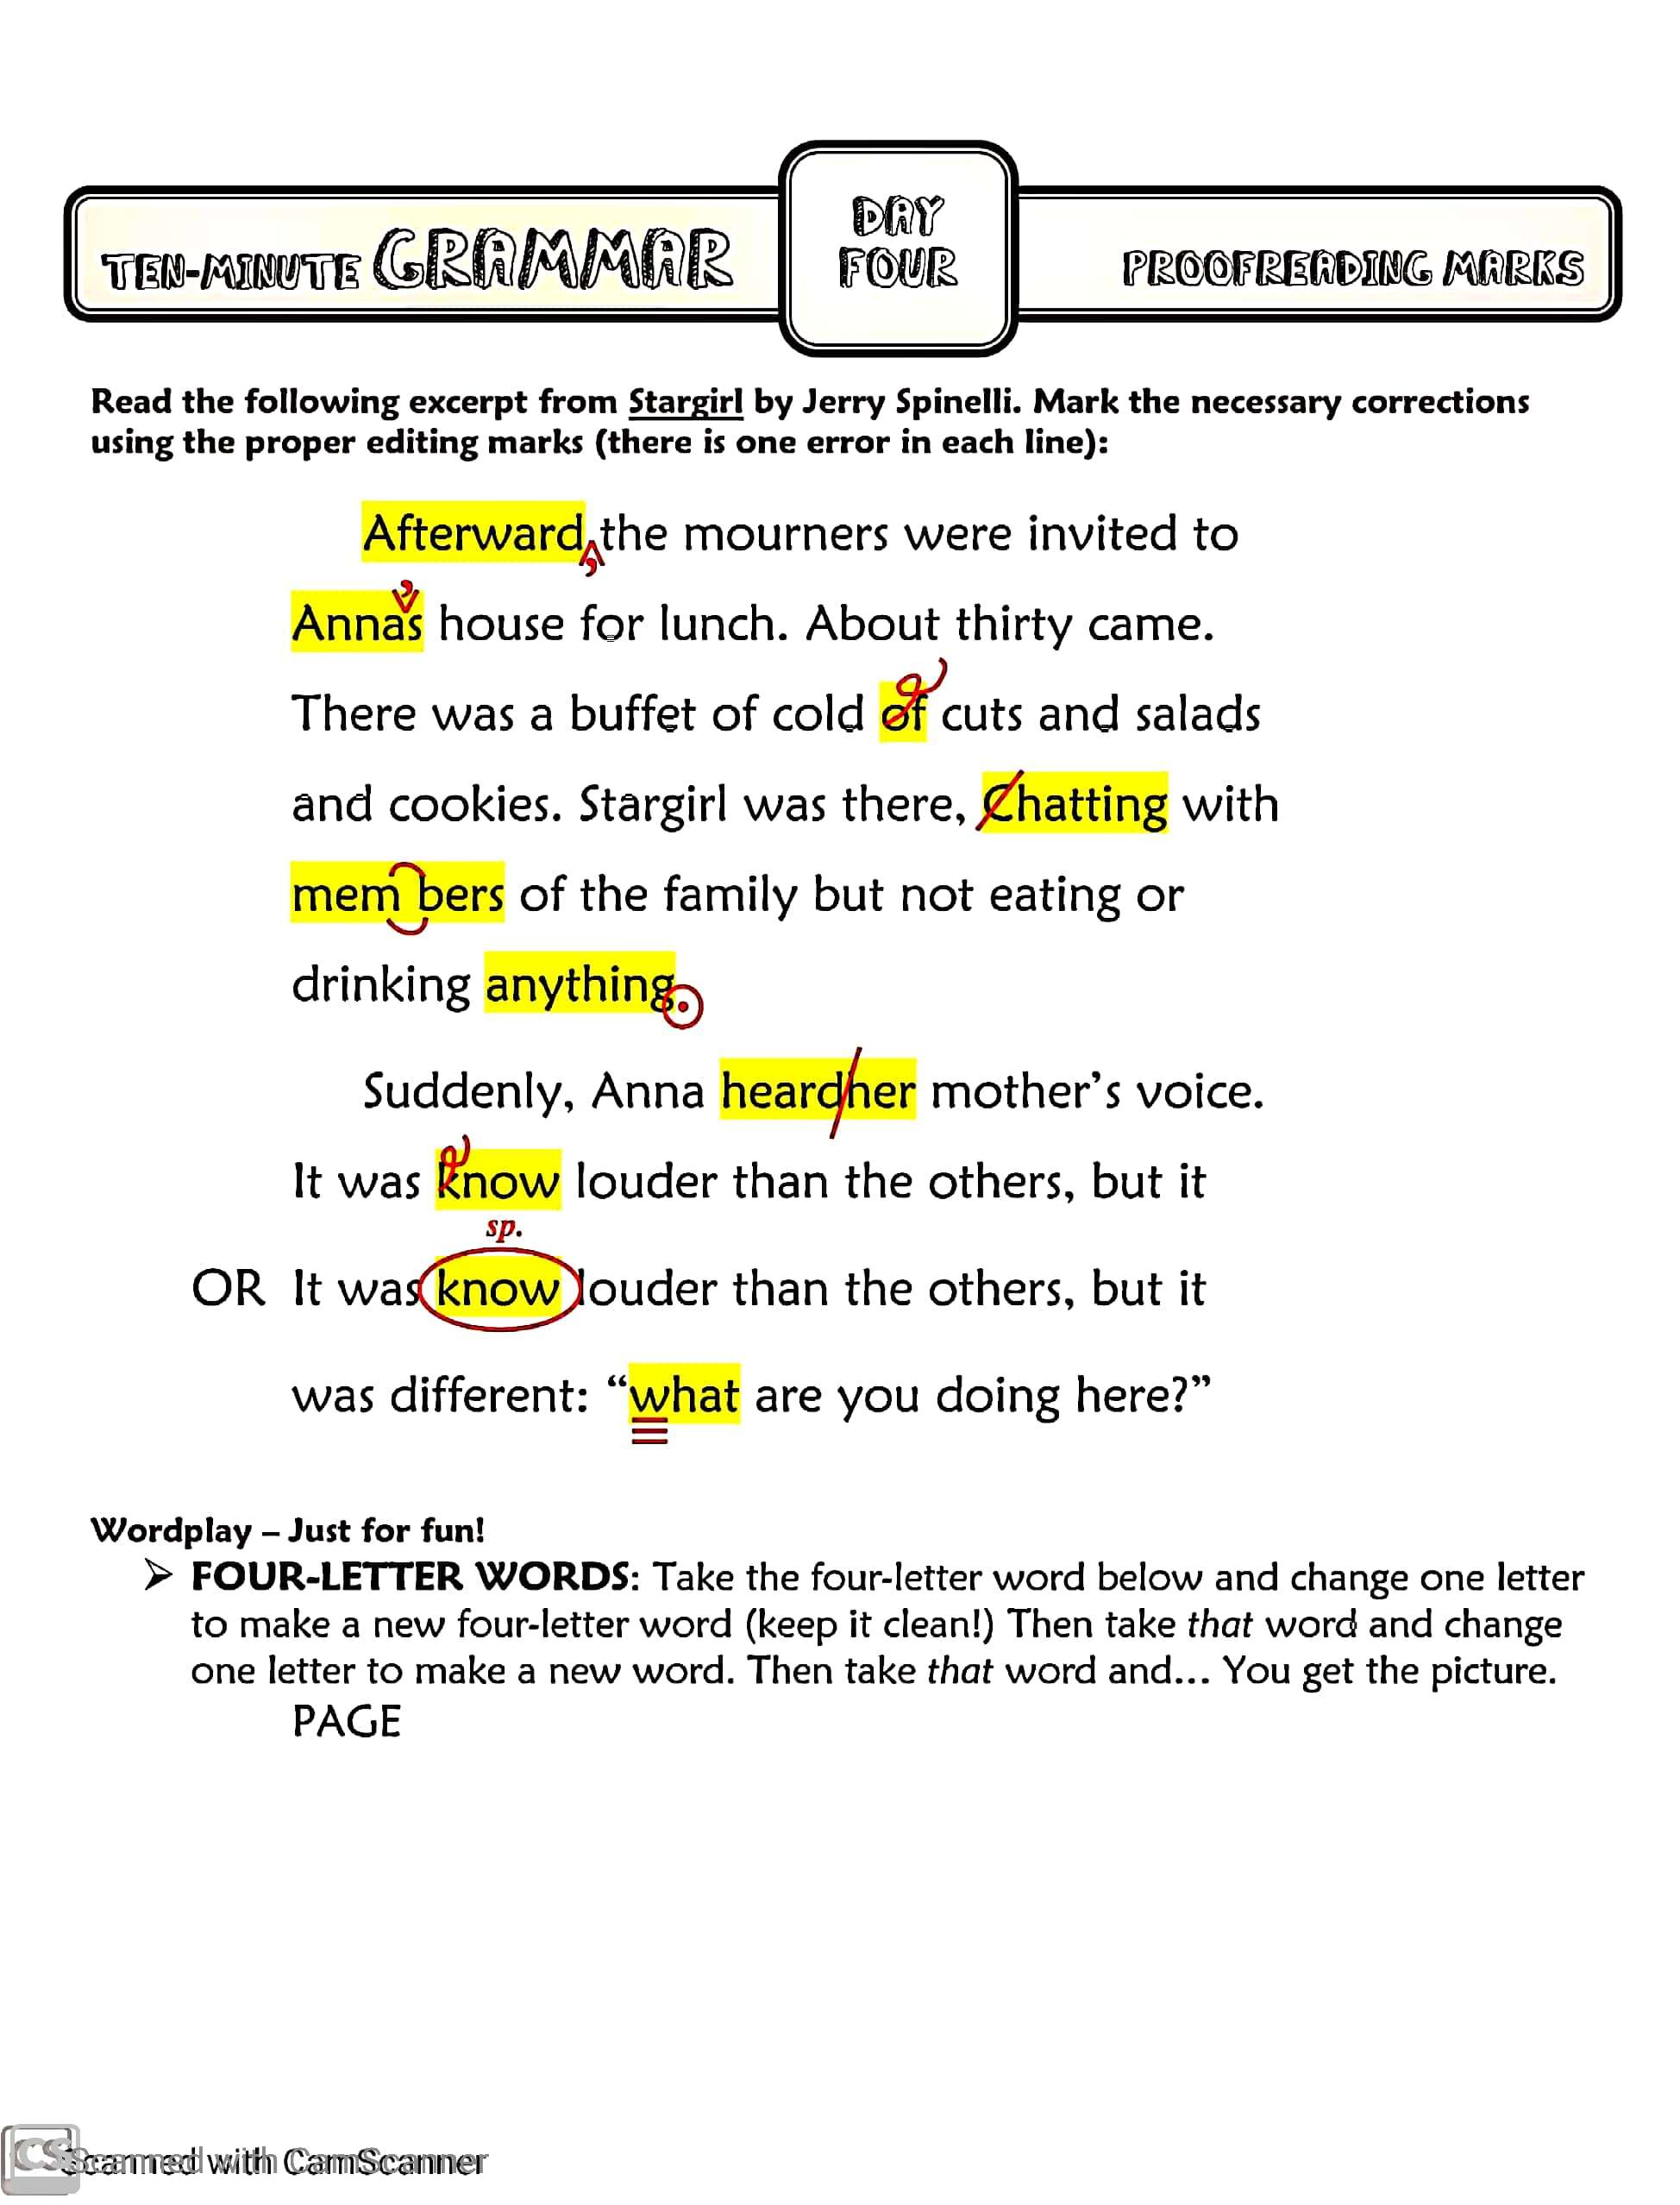 Proofreading Marks Amp Teacher S Guide With Answers For